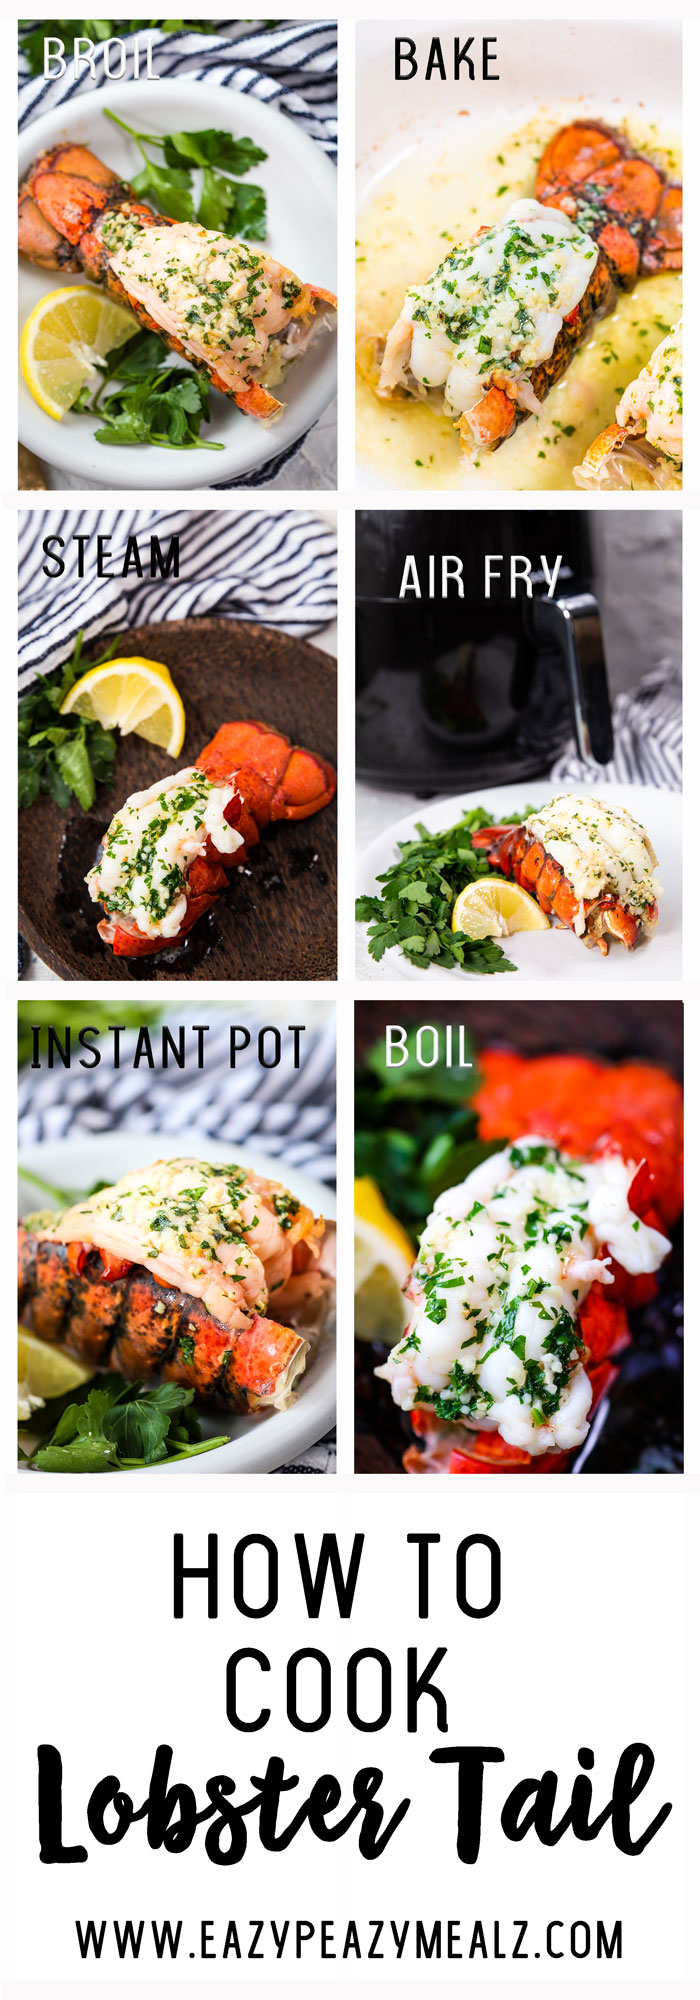 Lobster: How to Cook Lobster Tail - Easy Peasy Meals